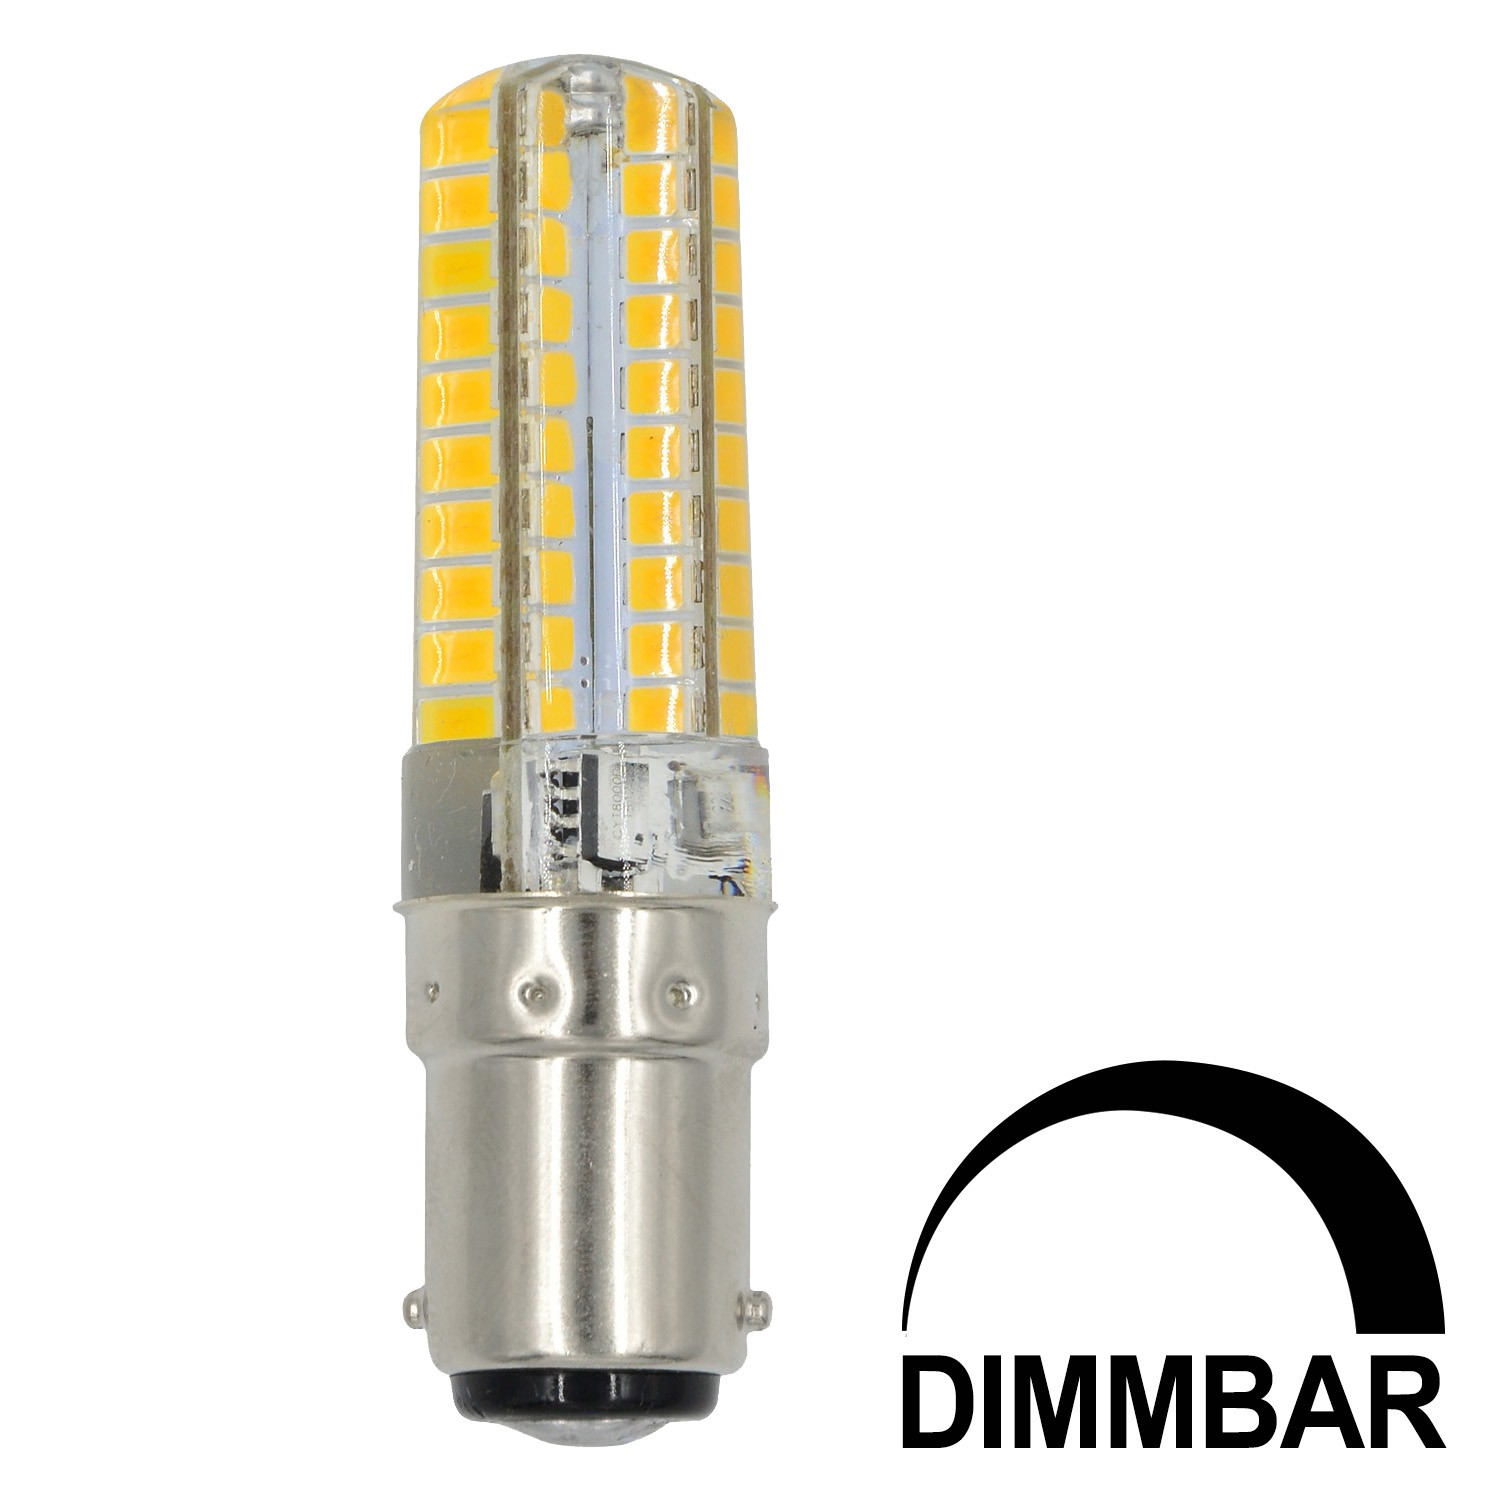 Led R7s Dimmbar Mengsled – Mengs® B15d 7w Led Dimmable Light 80x 2835 Smd Led Bulb Lamp In Warm White/cool White Energy-saving Light